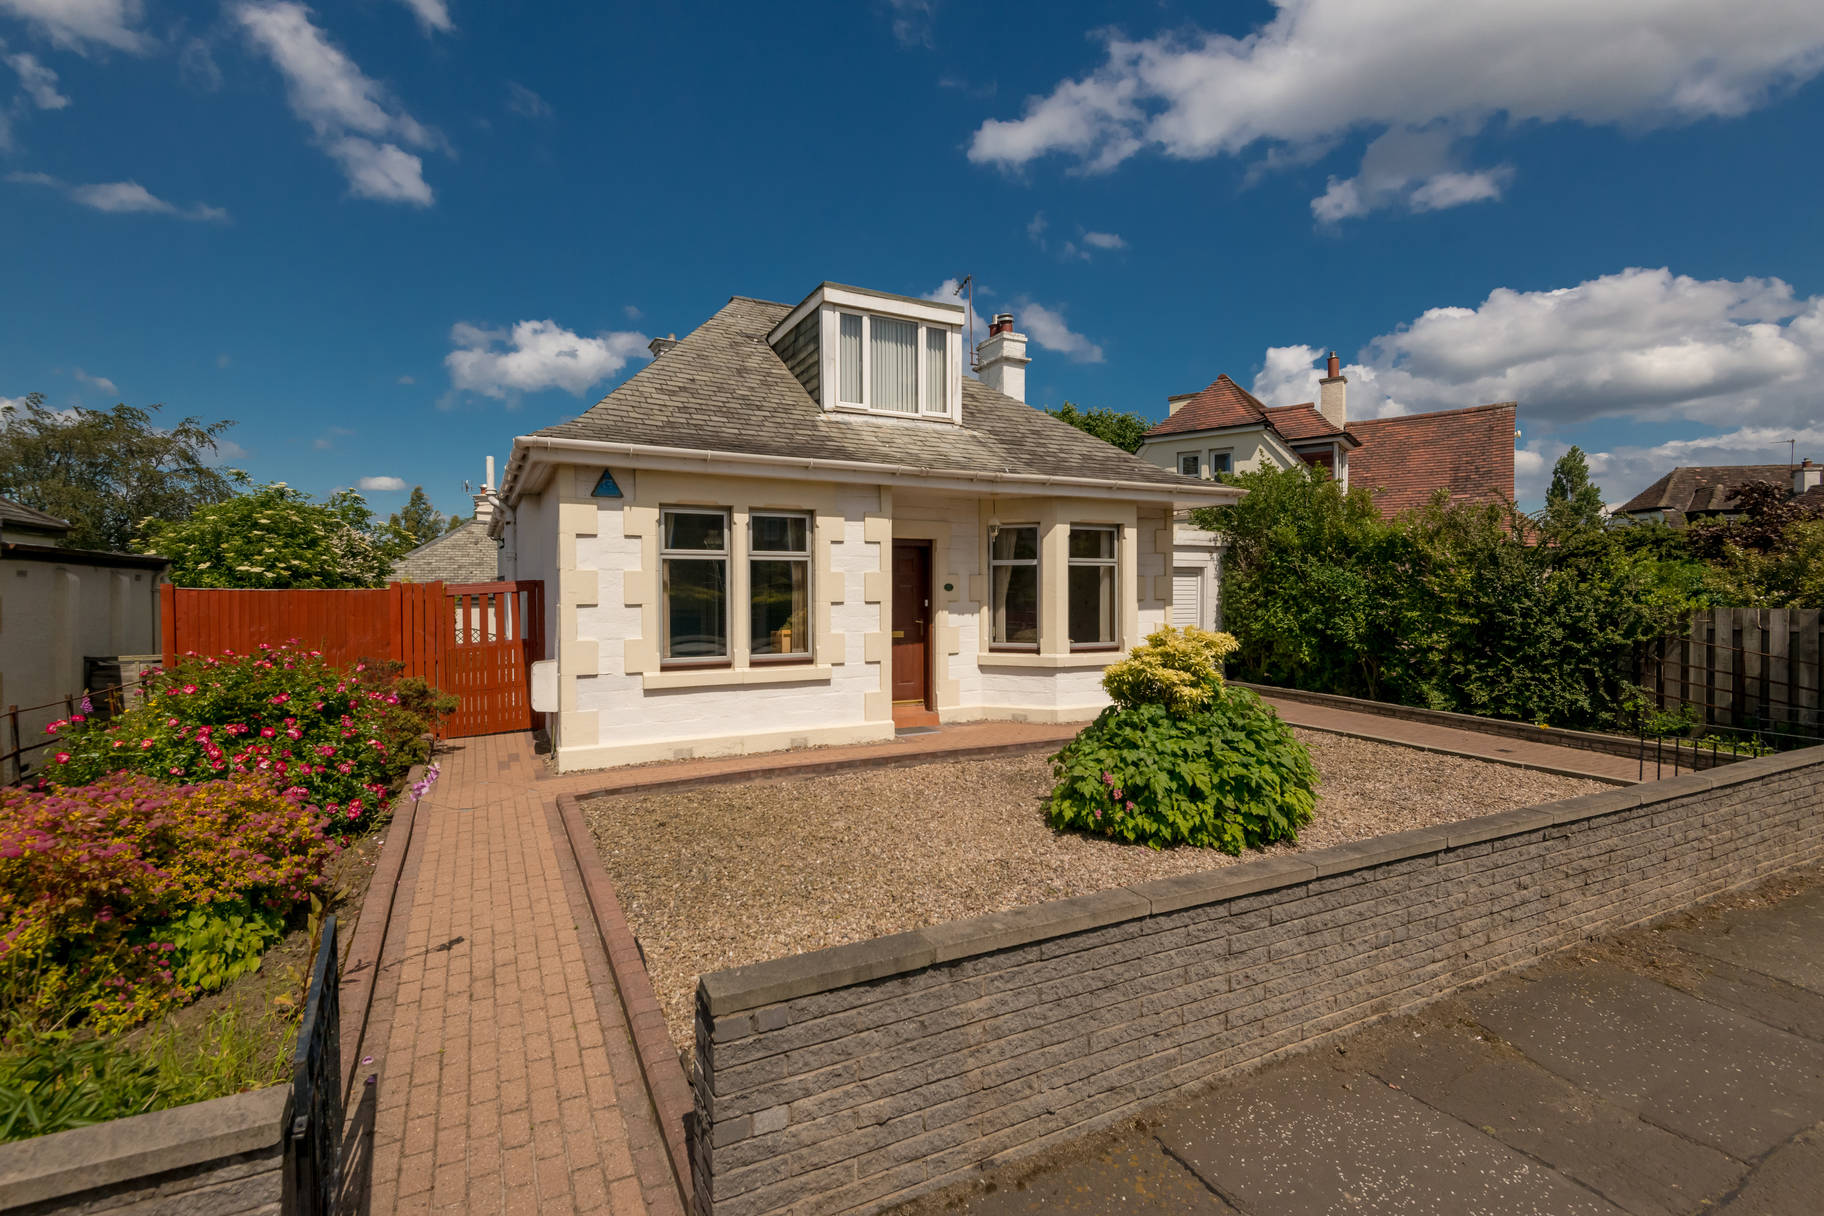 37 Telford Road, Edinburgh, EH4 2AY